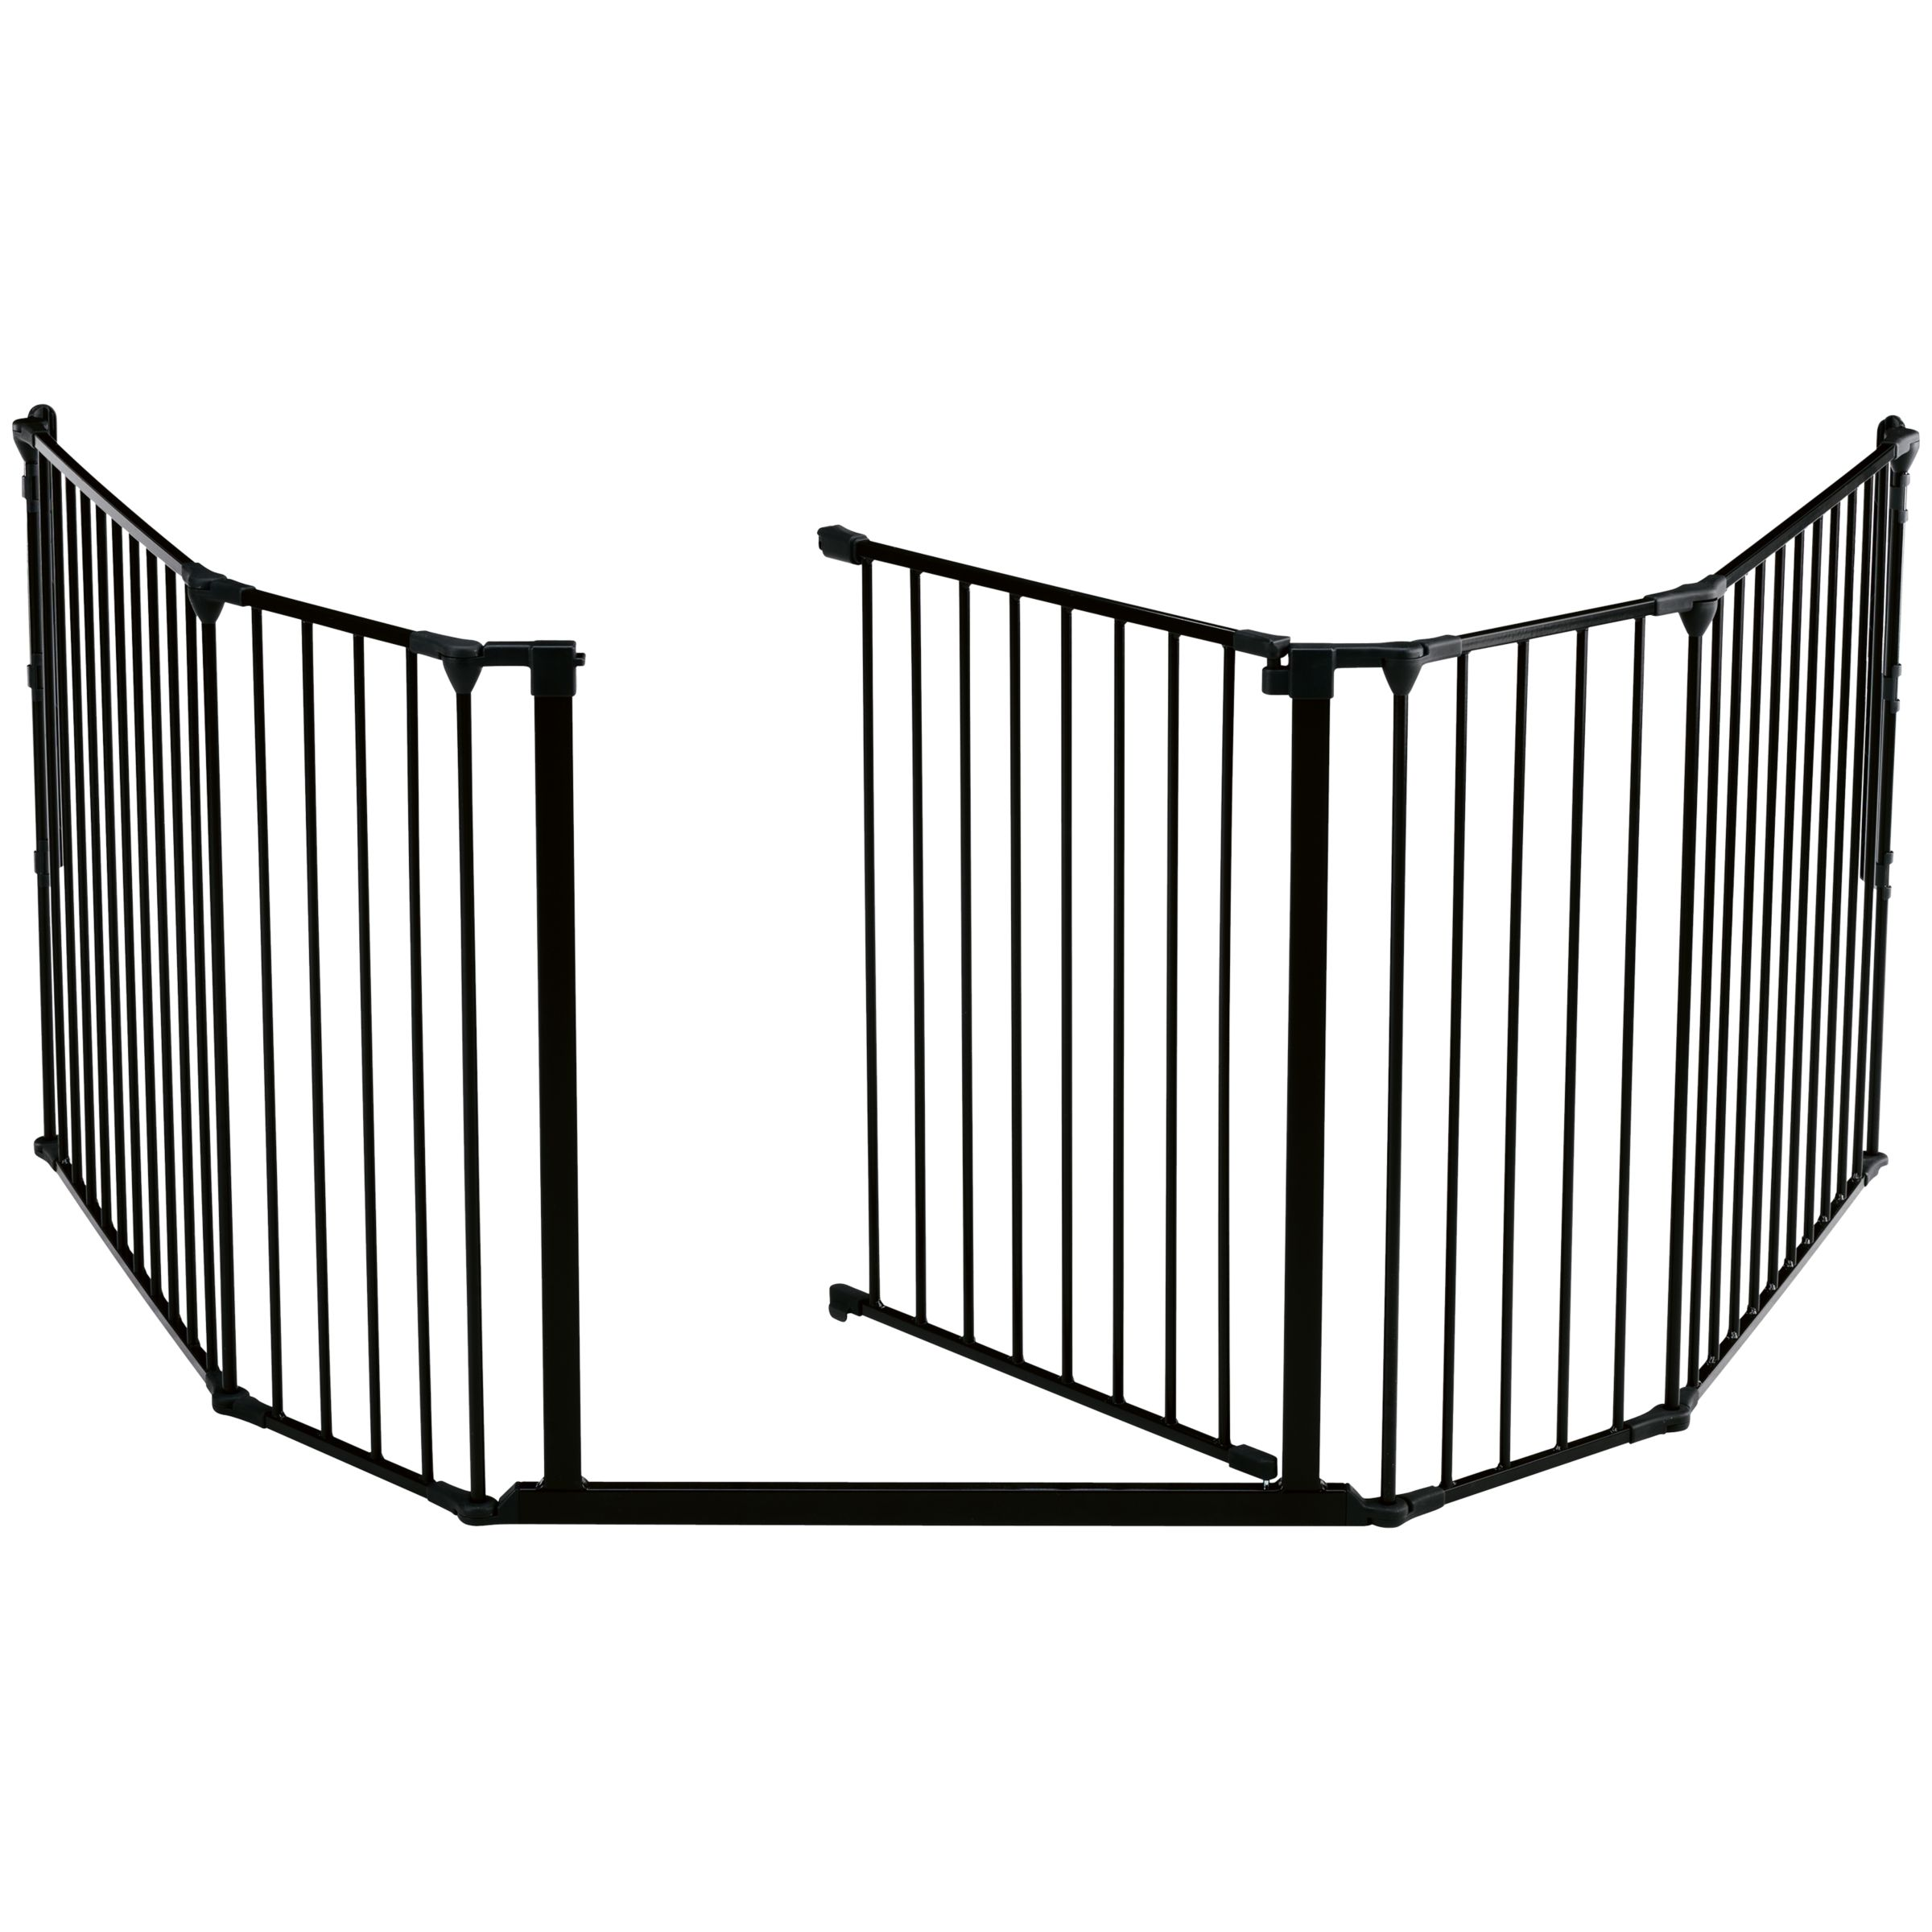 BabyDan BabyDan XL Fire Surround/Configure Gate, Black